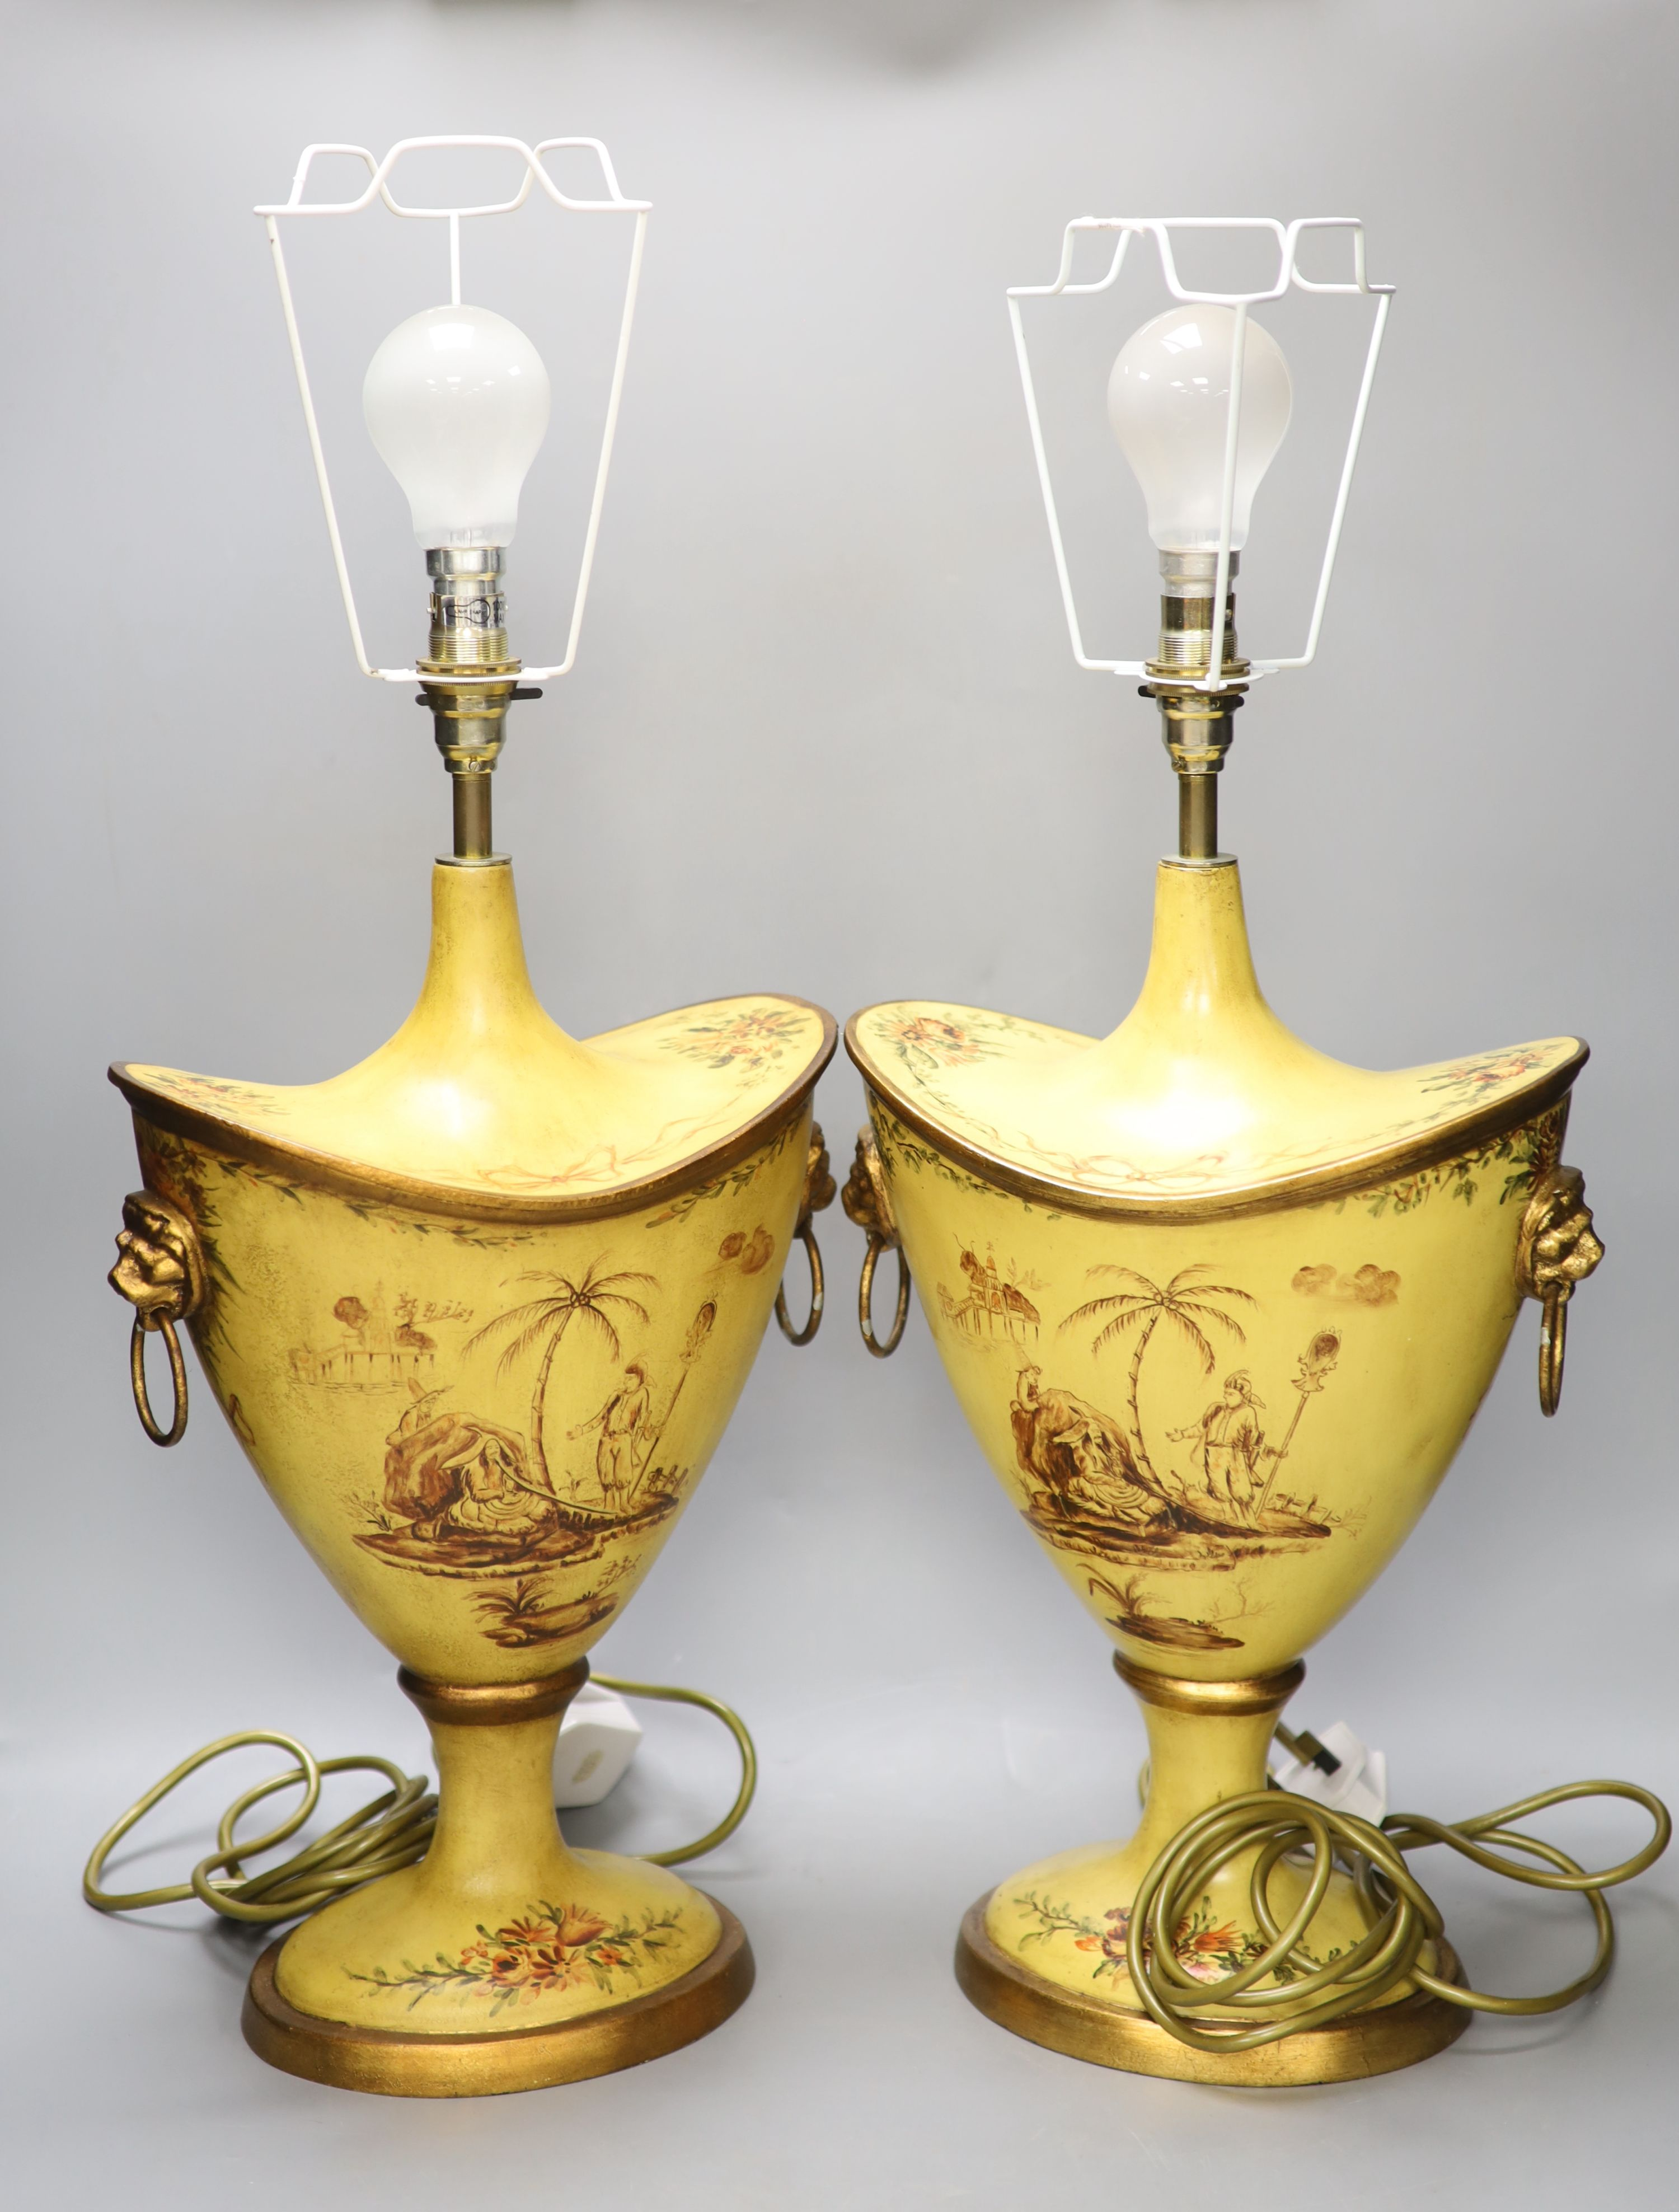 A pair of Regency style toleware lamps, height 40cm